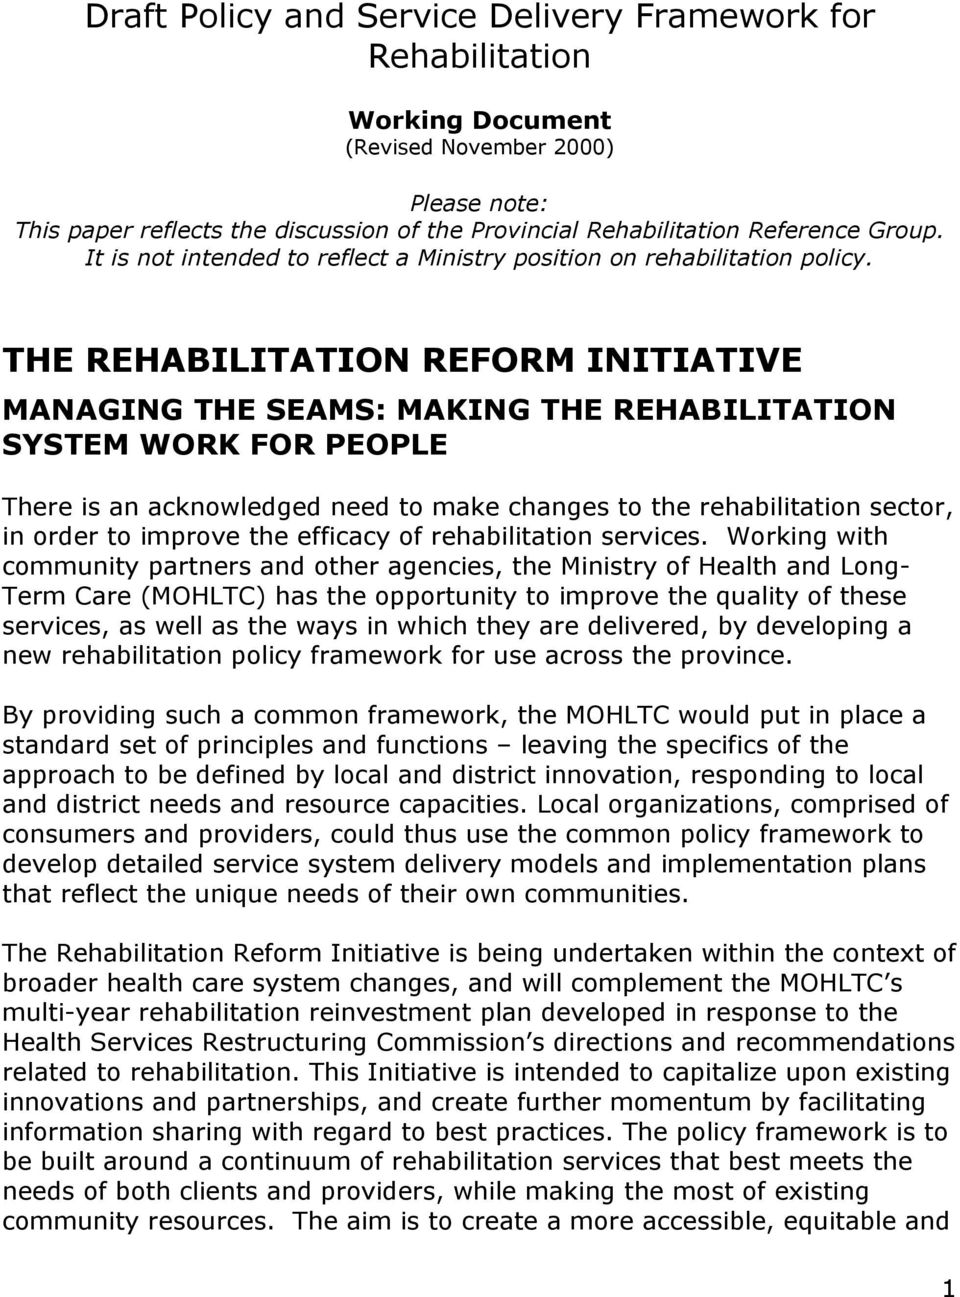 THE REHABILITATION REFORM INITIATIVE MANAGING THE SEAMS: MAKING THE REHABILITATION SYSTEM WORK FOR PEOPLE There is an acknowledged need to make changes to the rehabilitation sector, in order to